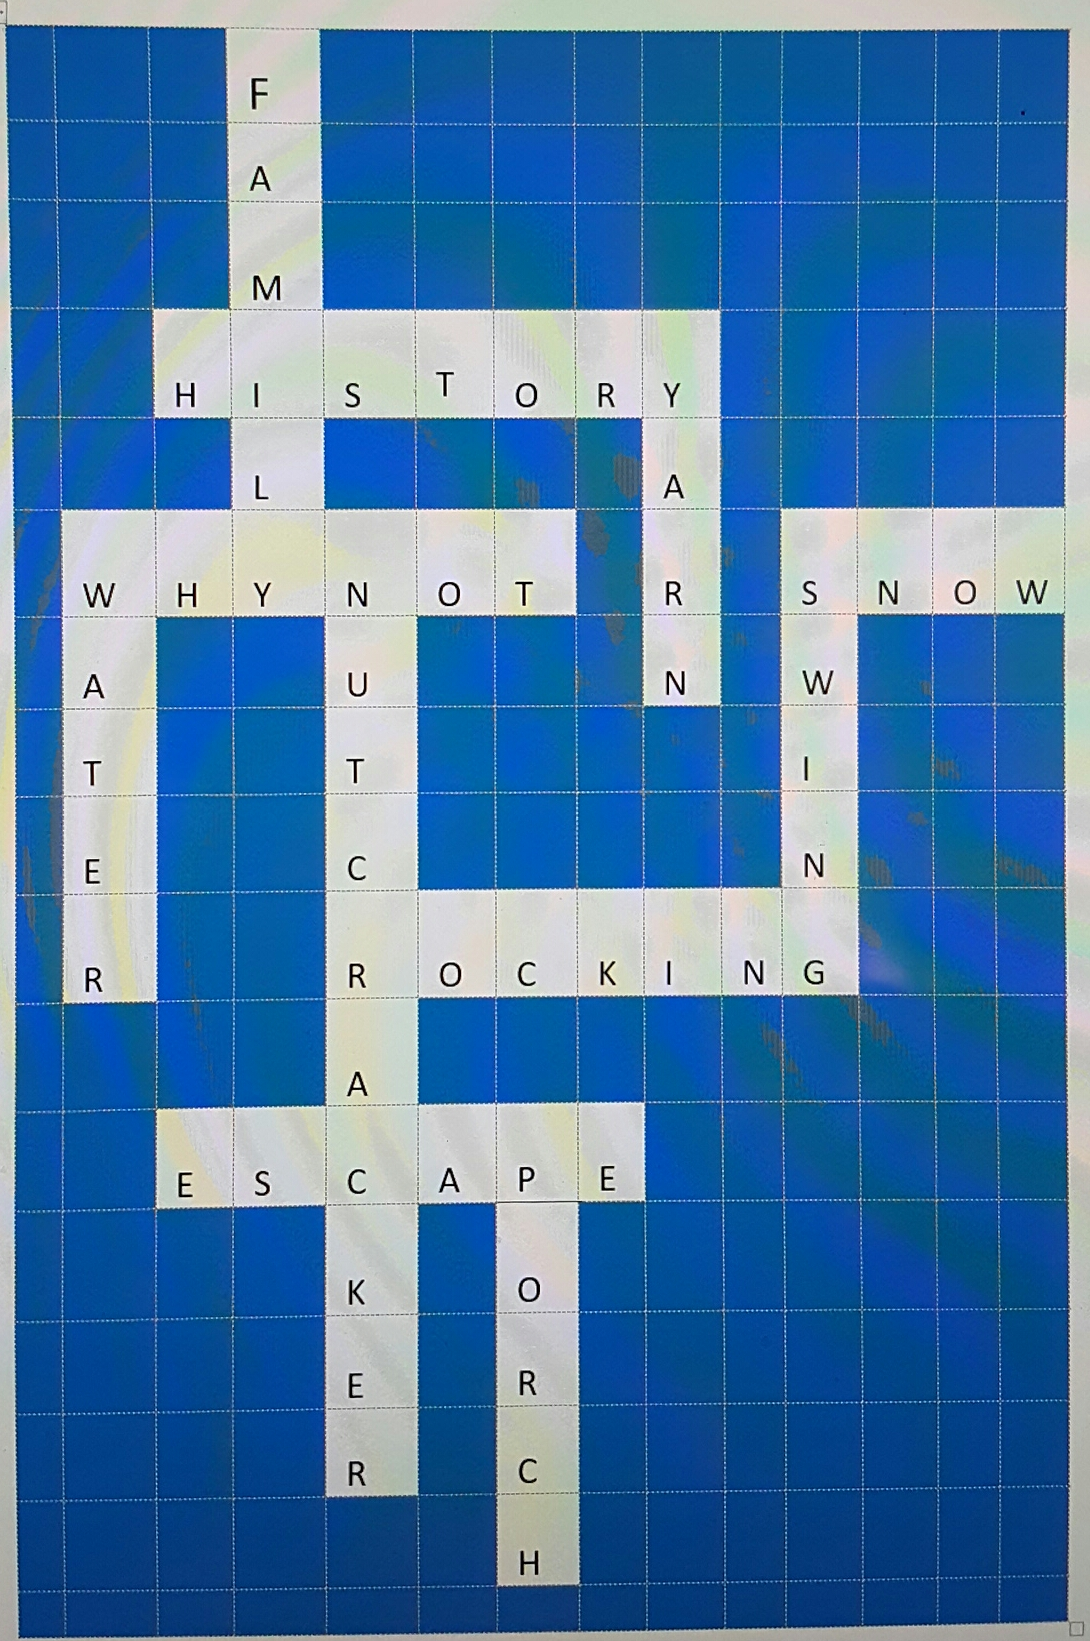 crossword-ans